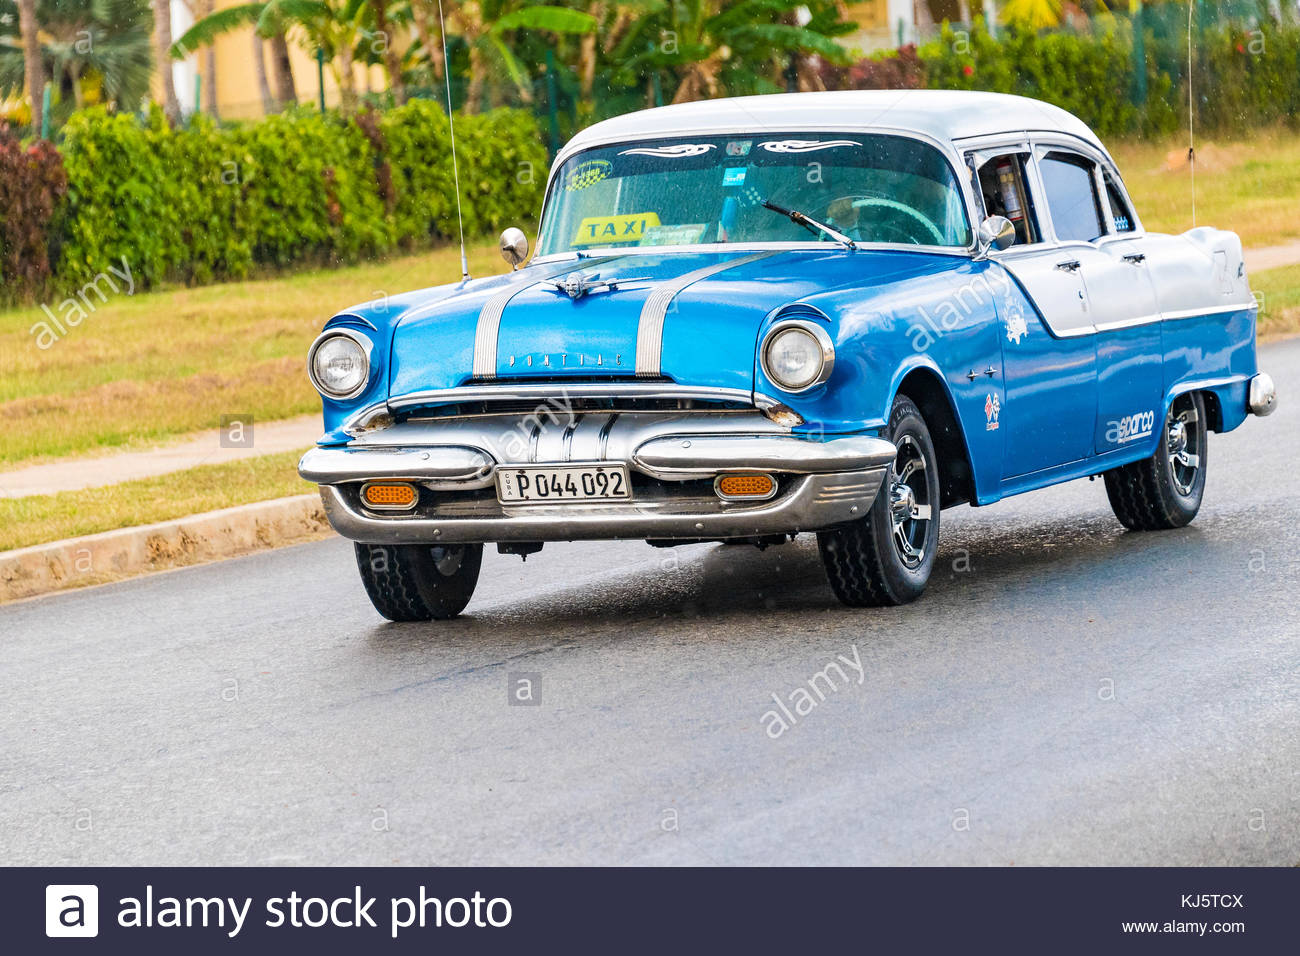 Old classic cars driving or in action. Cuba is known for the many ...